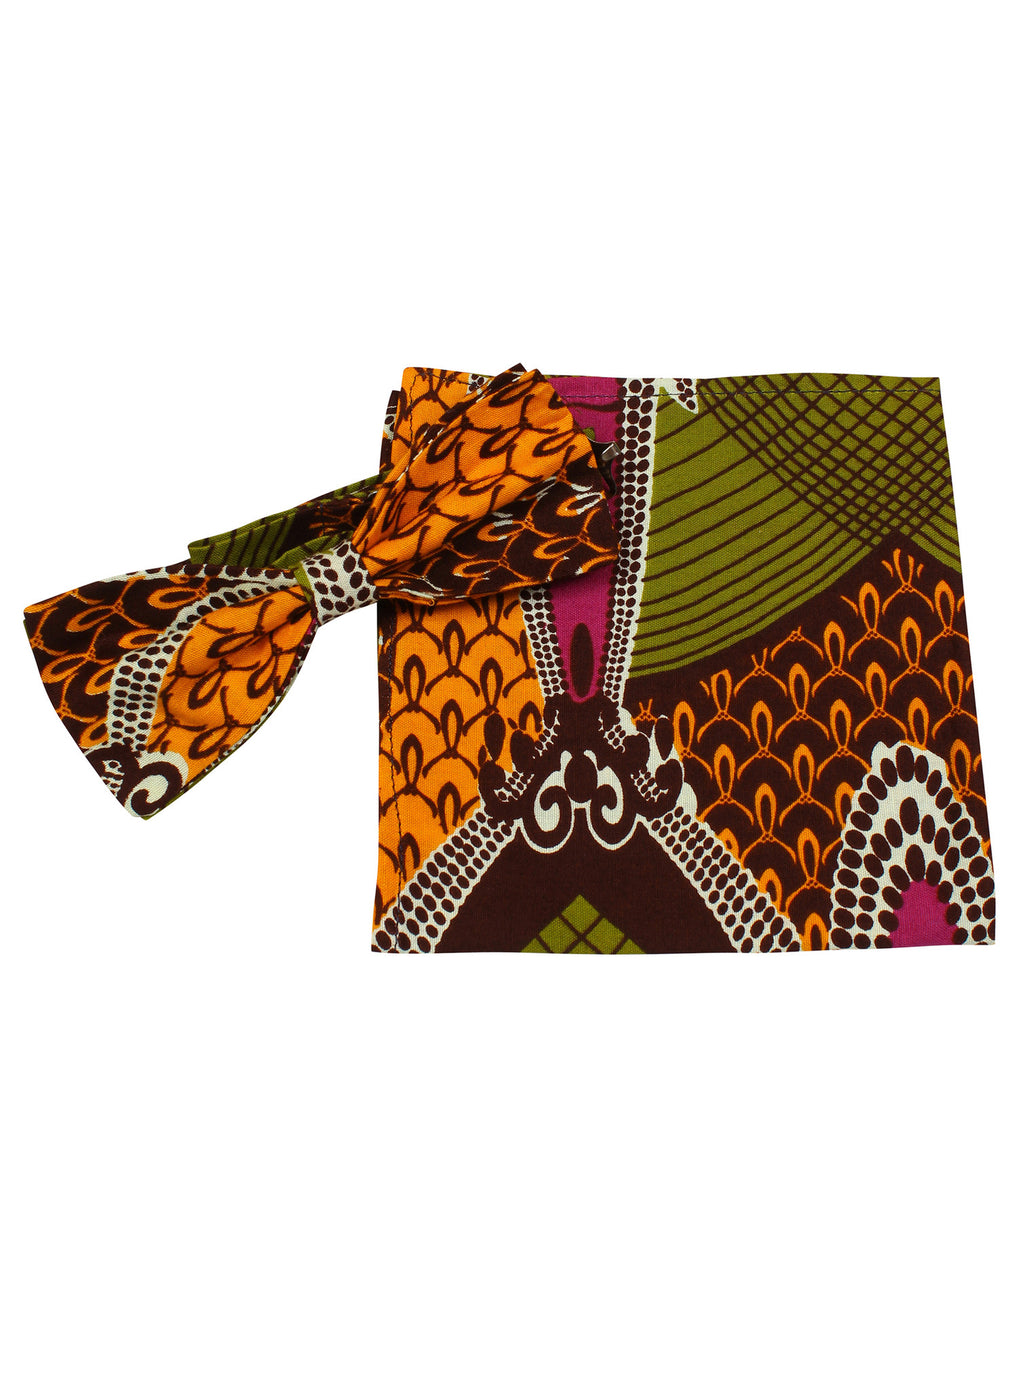 Men's African Print Bow Tie & Pocket Square-Chandelier - OHEMA OHENE AFRICAN INSPIRED FASHION  - 1